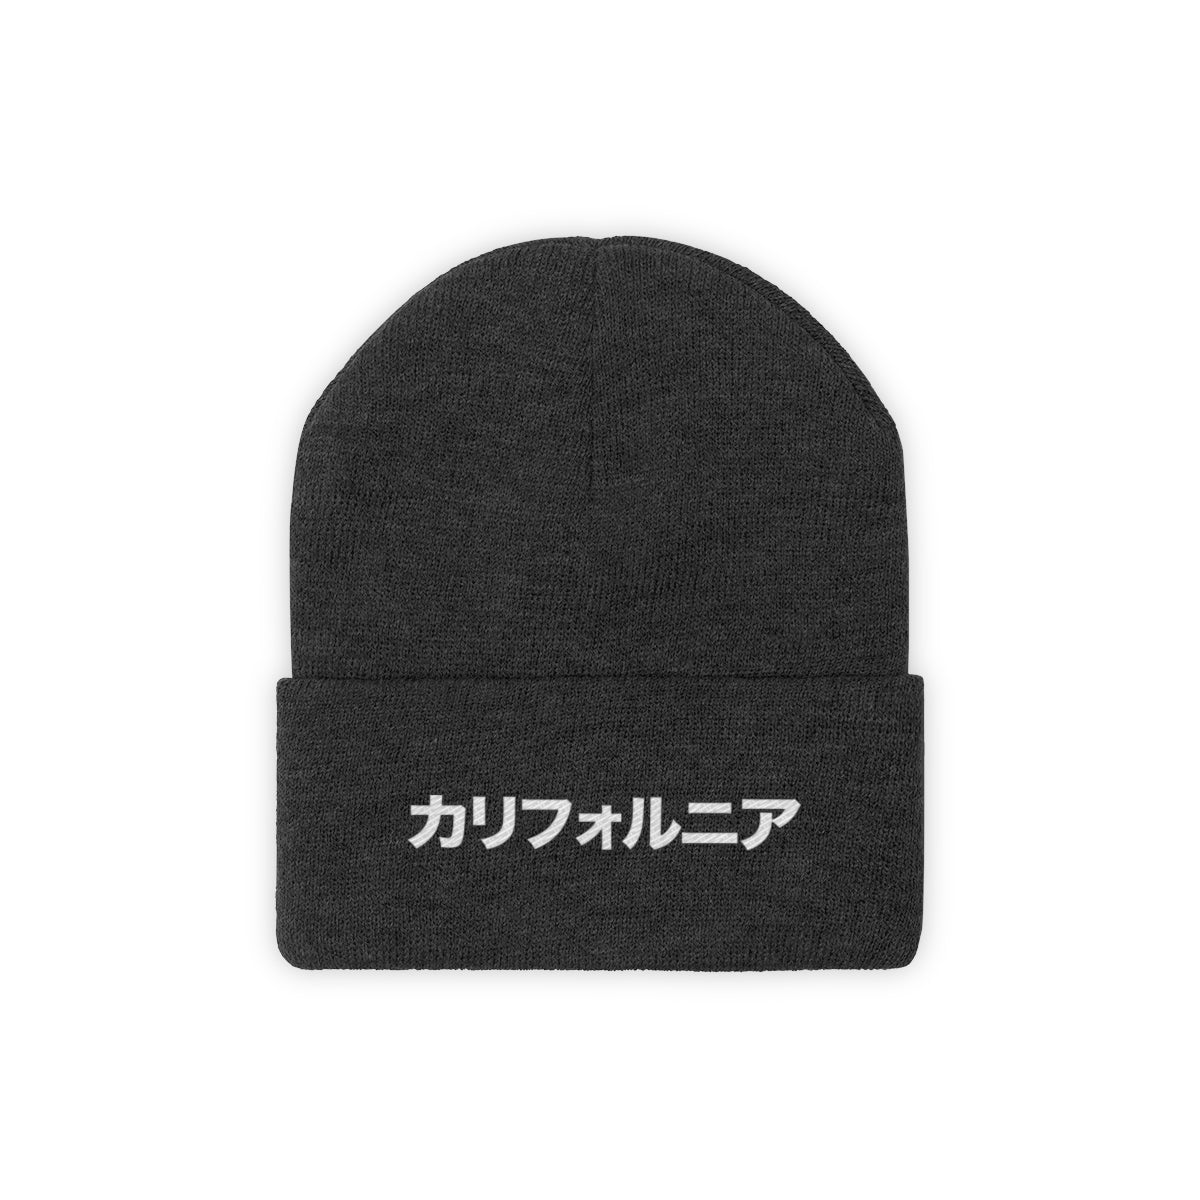 geek lord anime beanie black beanie anime clothing anime clothes anime streetwear anime street wear